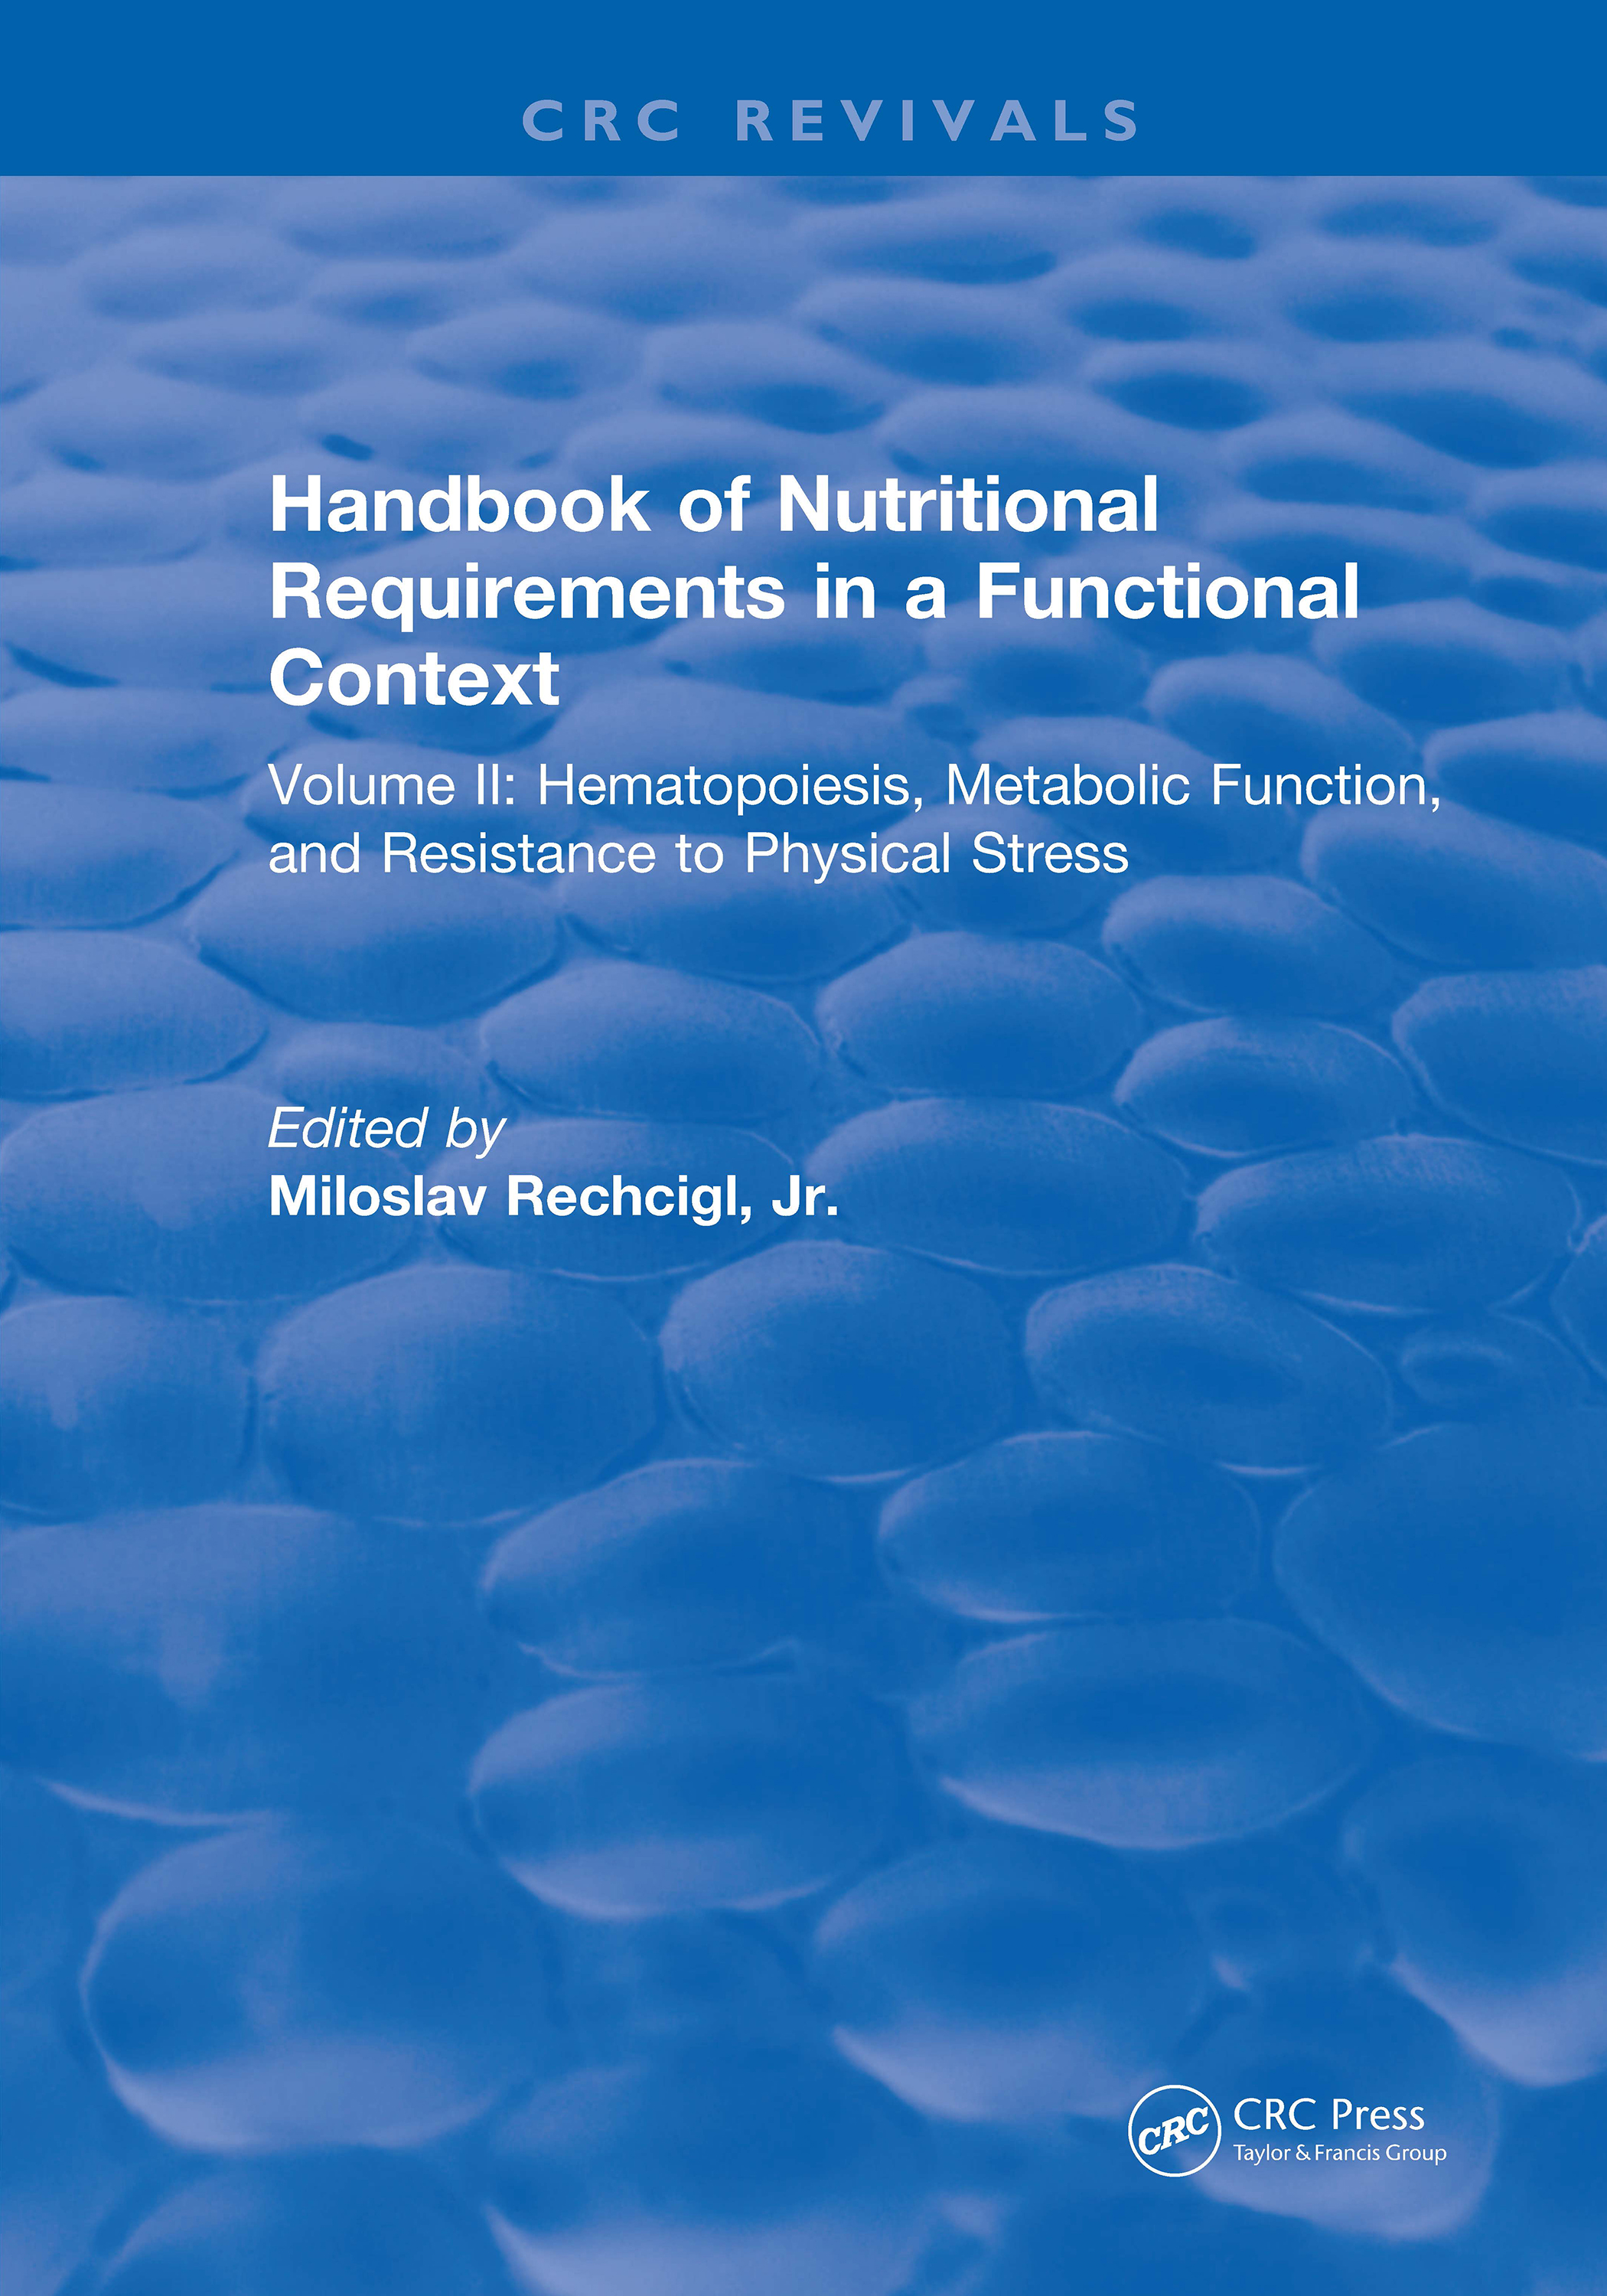 Handbook of Nutritional Requirements in a Functional Context: Volume II, Hematopoiesis, Metabolic Function, and Resistance to Physical Stress, 1st Edition (Hardback) book cover